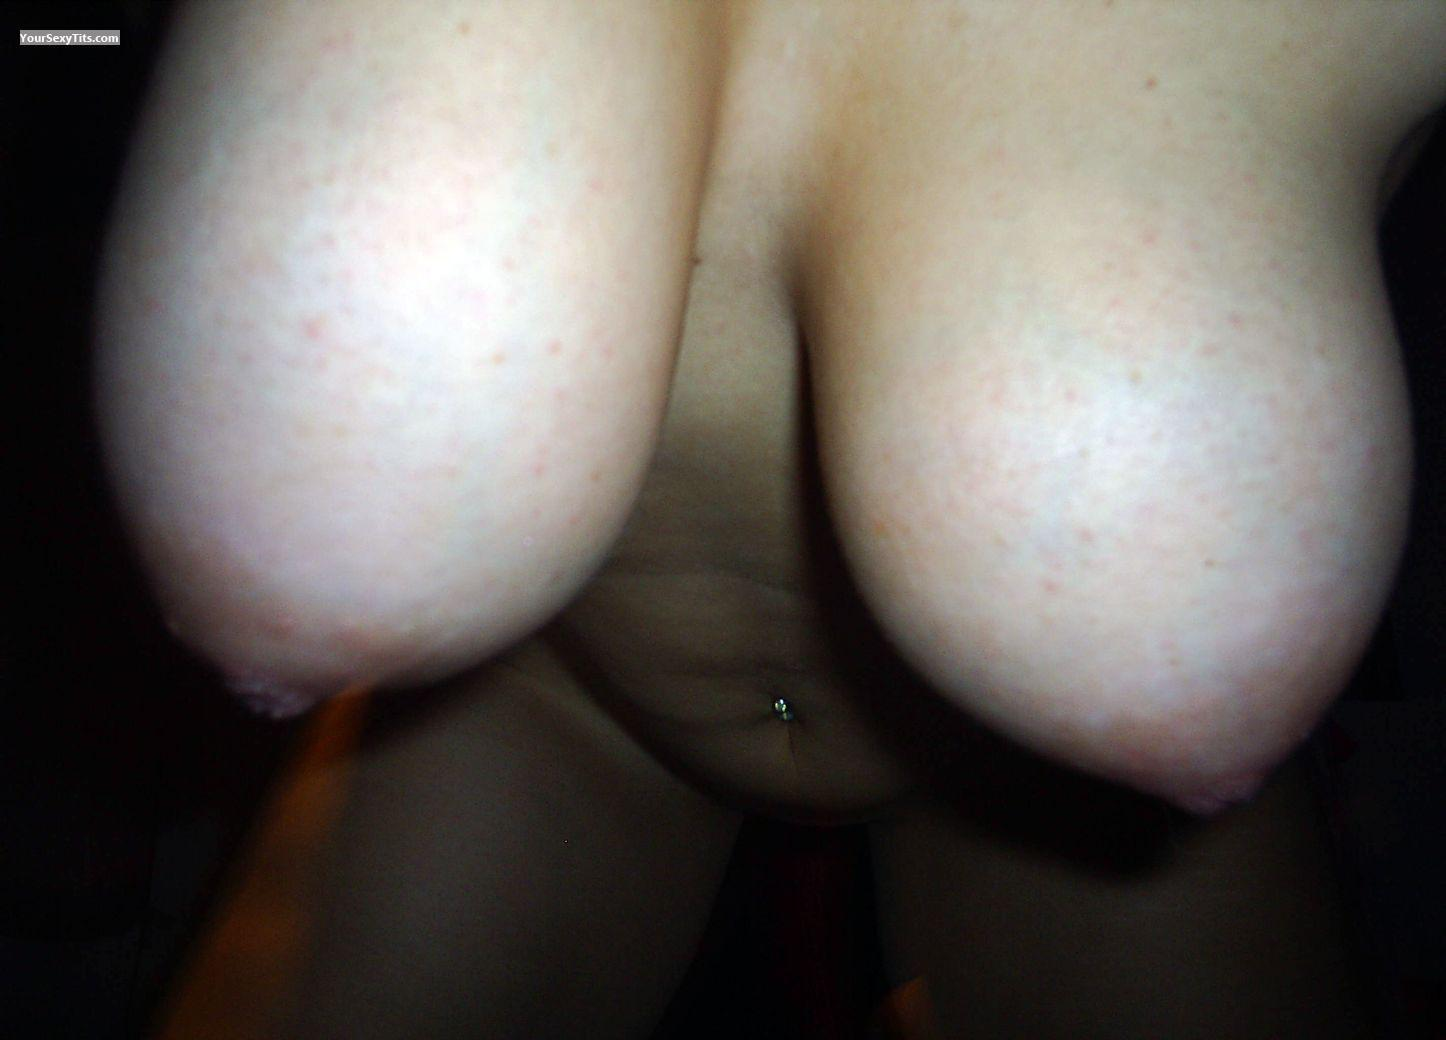 Tit Flash: Girlfriend's Medium Tits - Anni from Germany